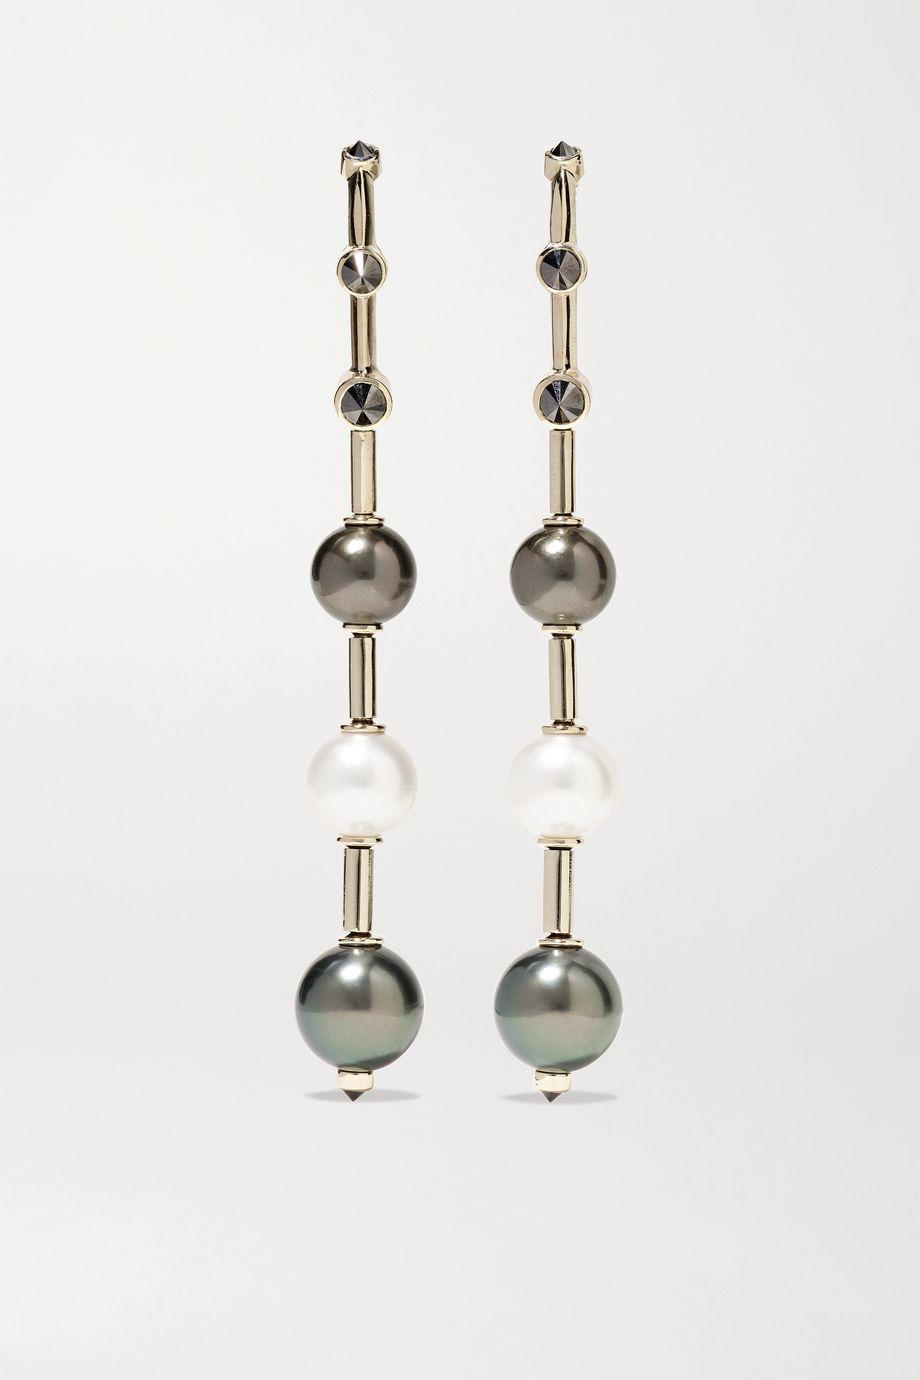 Ara Vartanian 18-karat white gold, pearl and diamond earrings